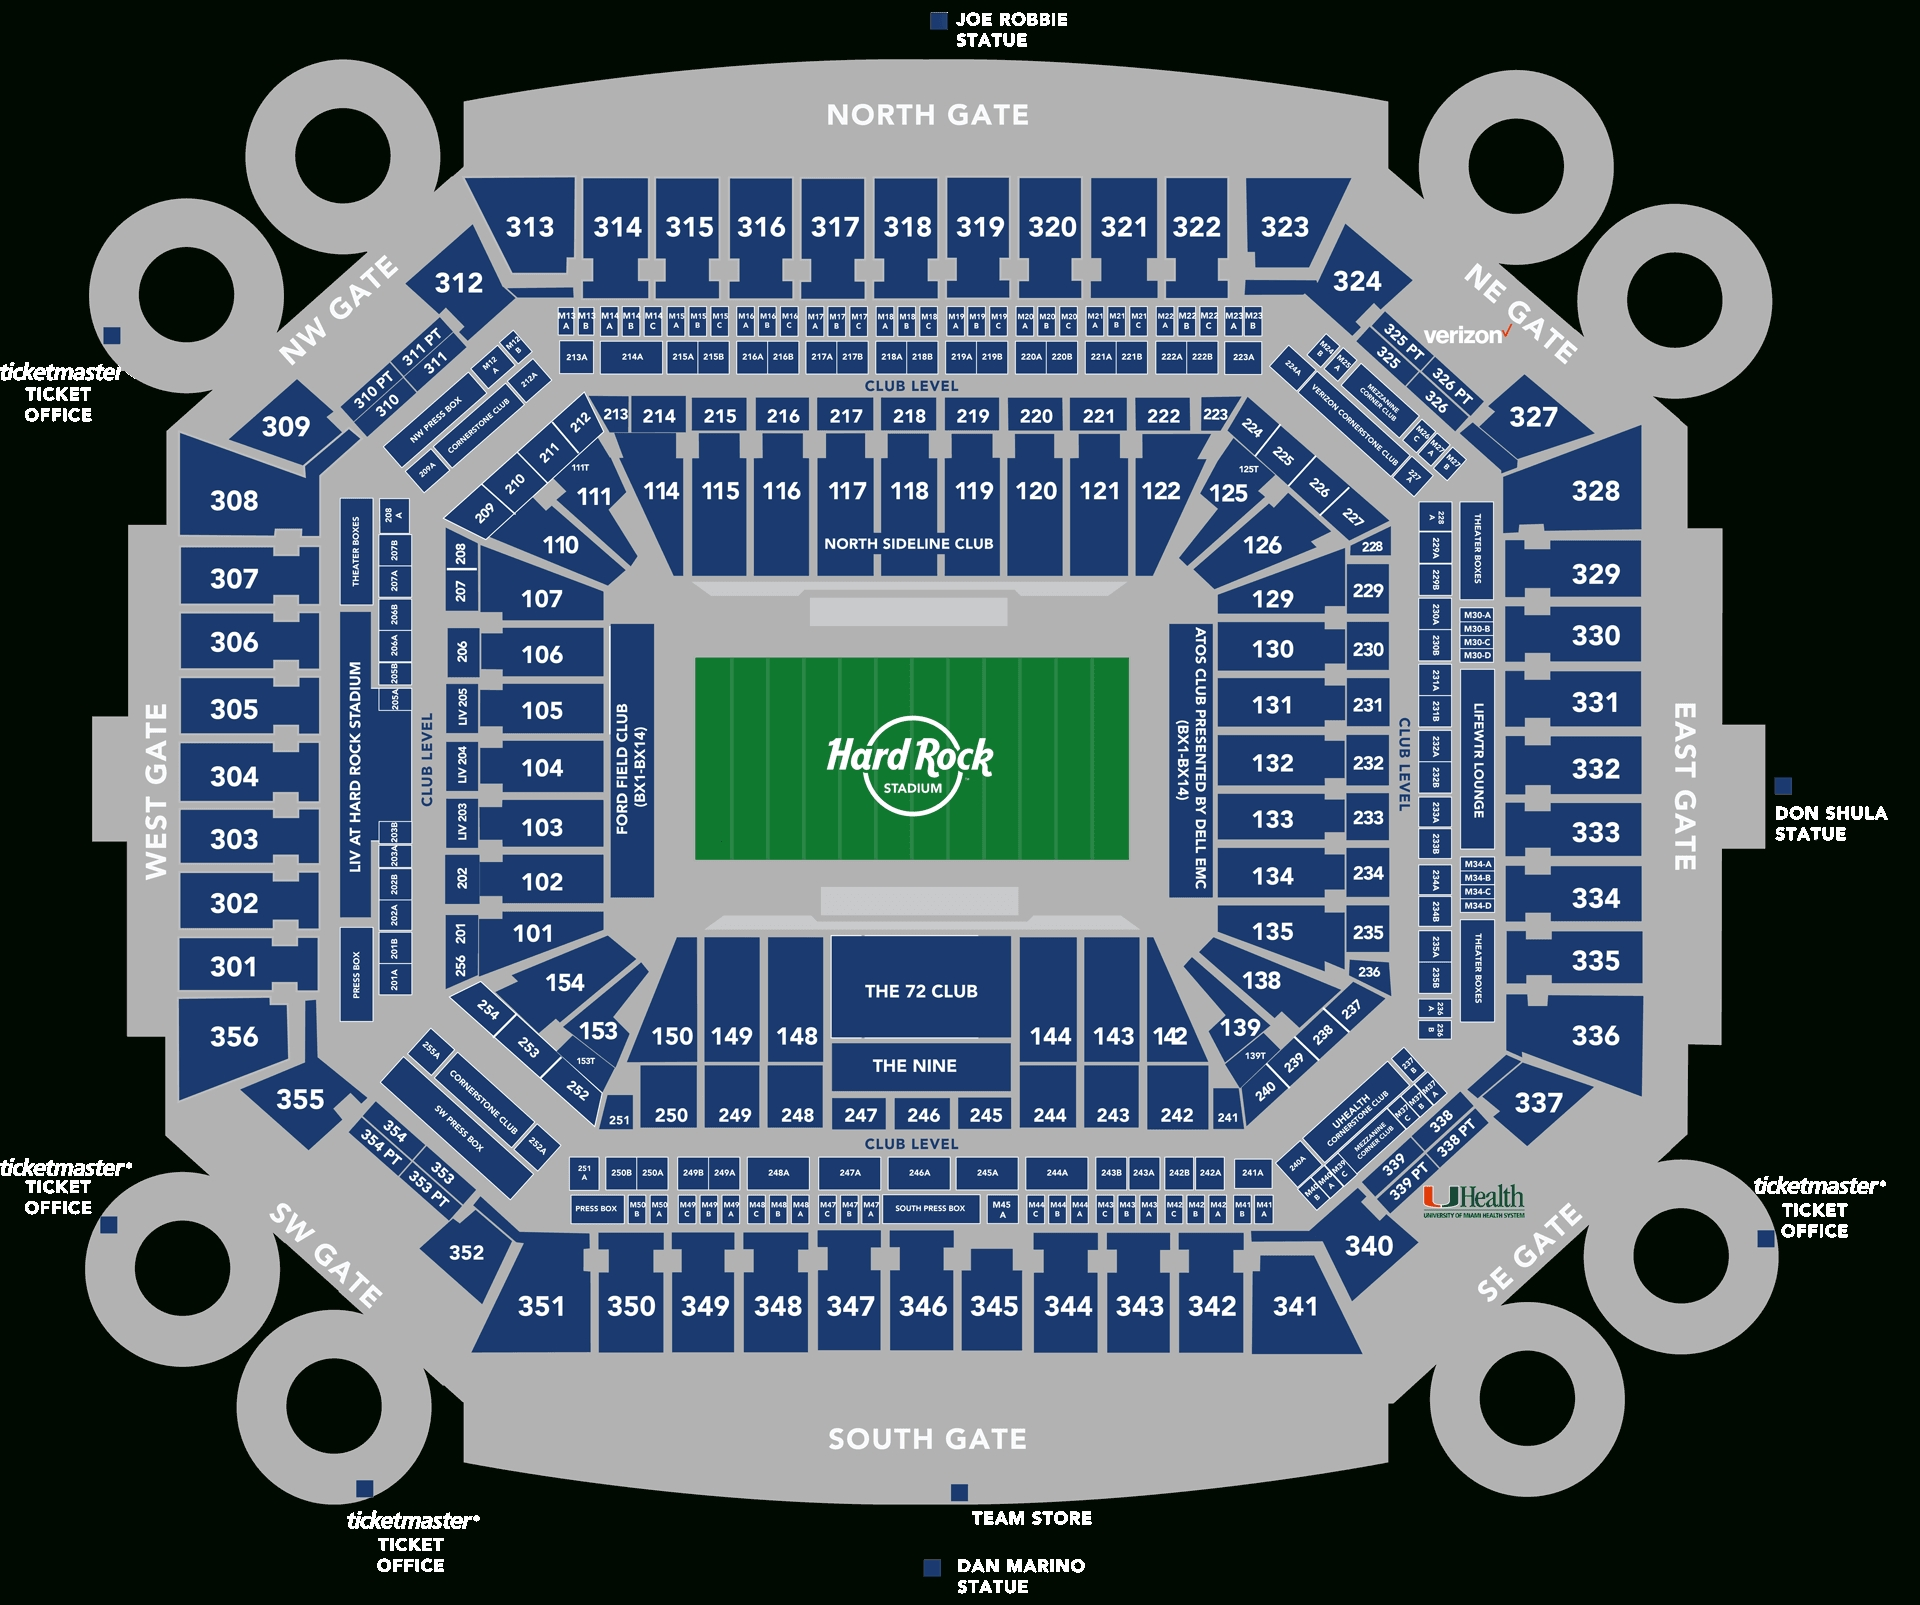 Stadium Seating Chart - Hard Rock Stadium throughout Super Bowl Stadium 2019 Seating Capacity